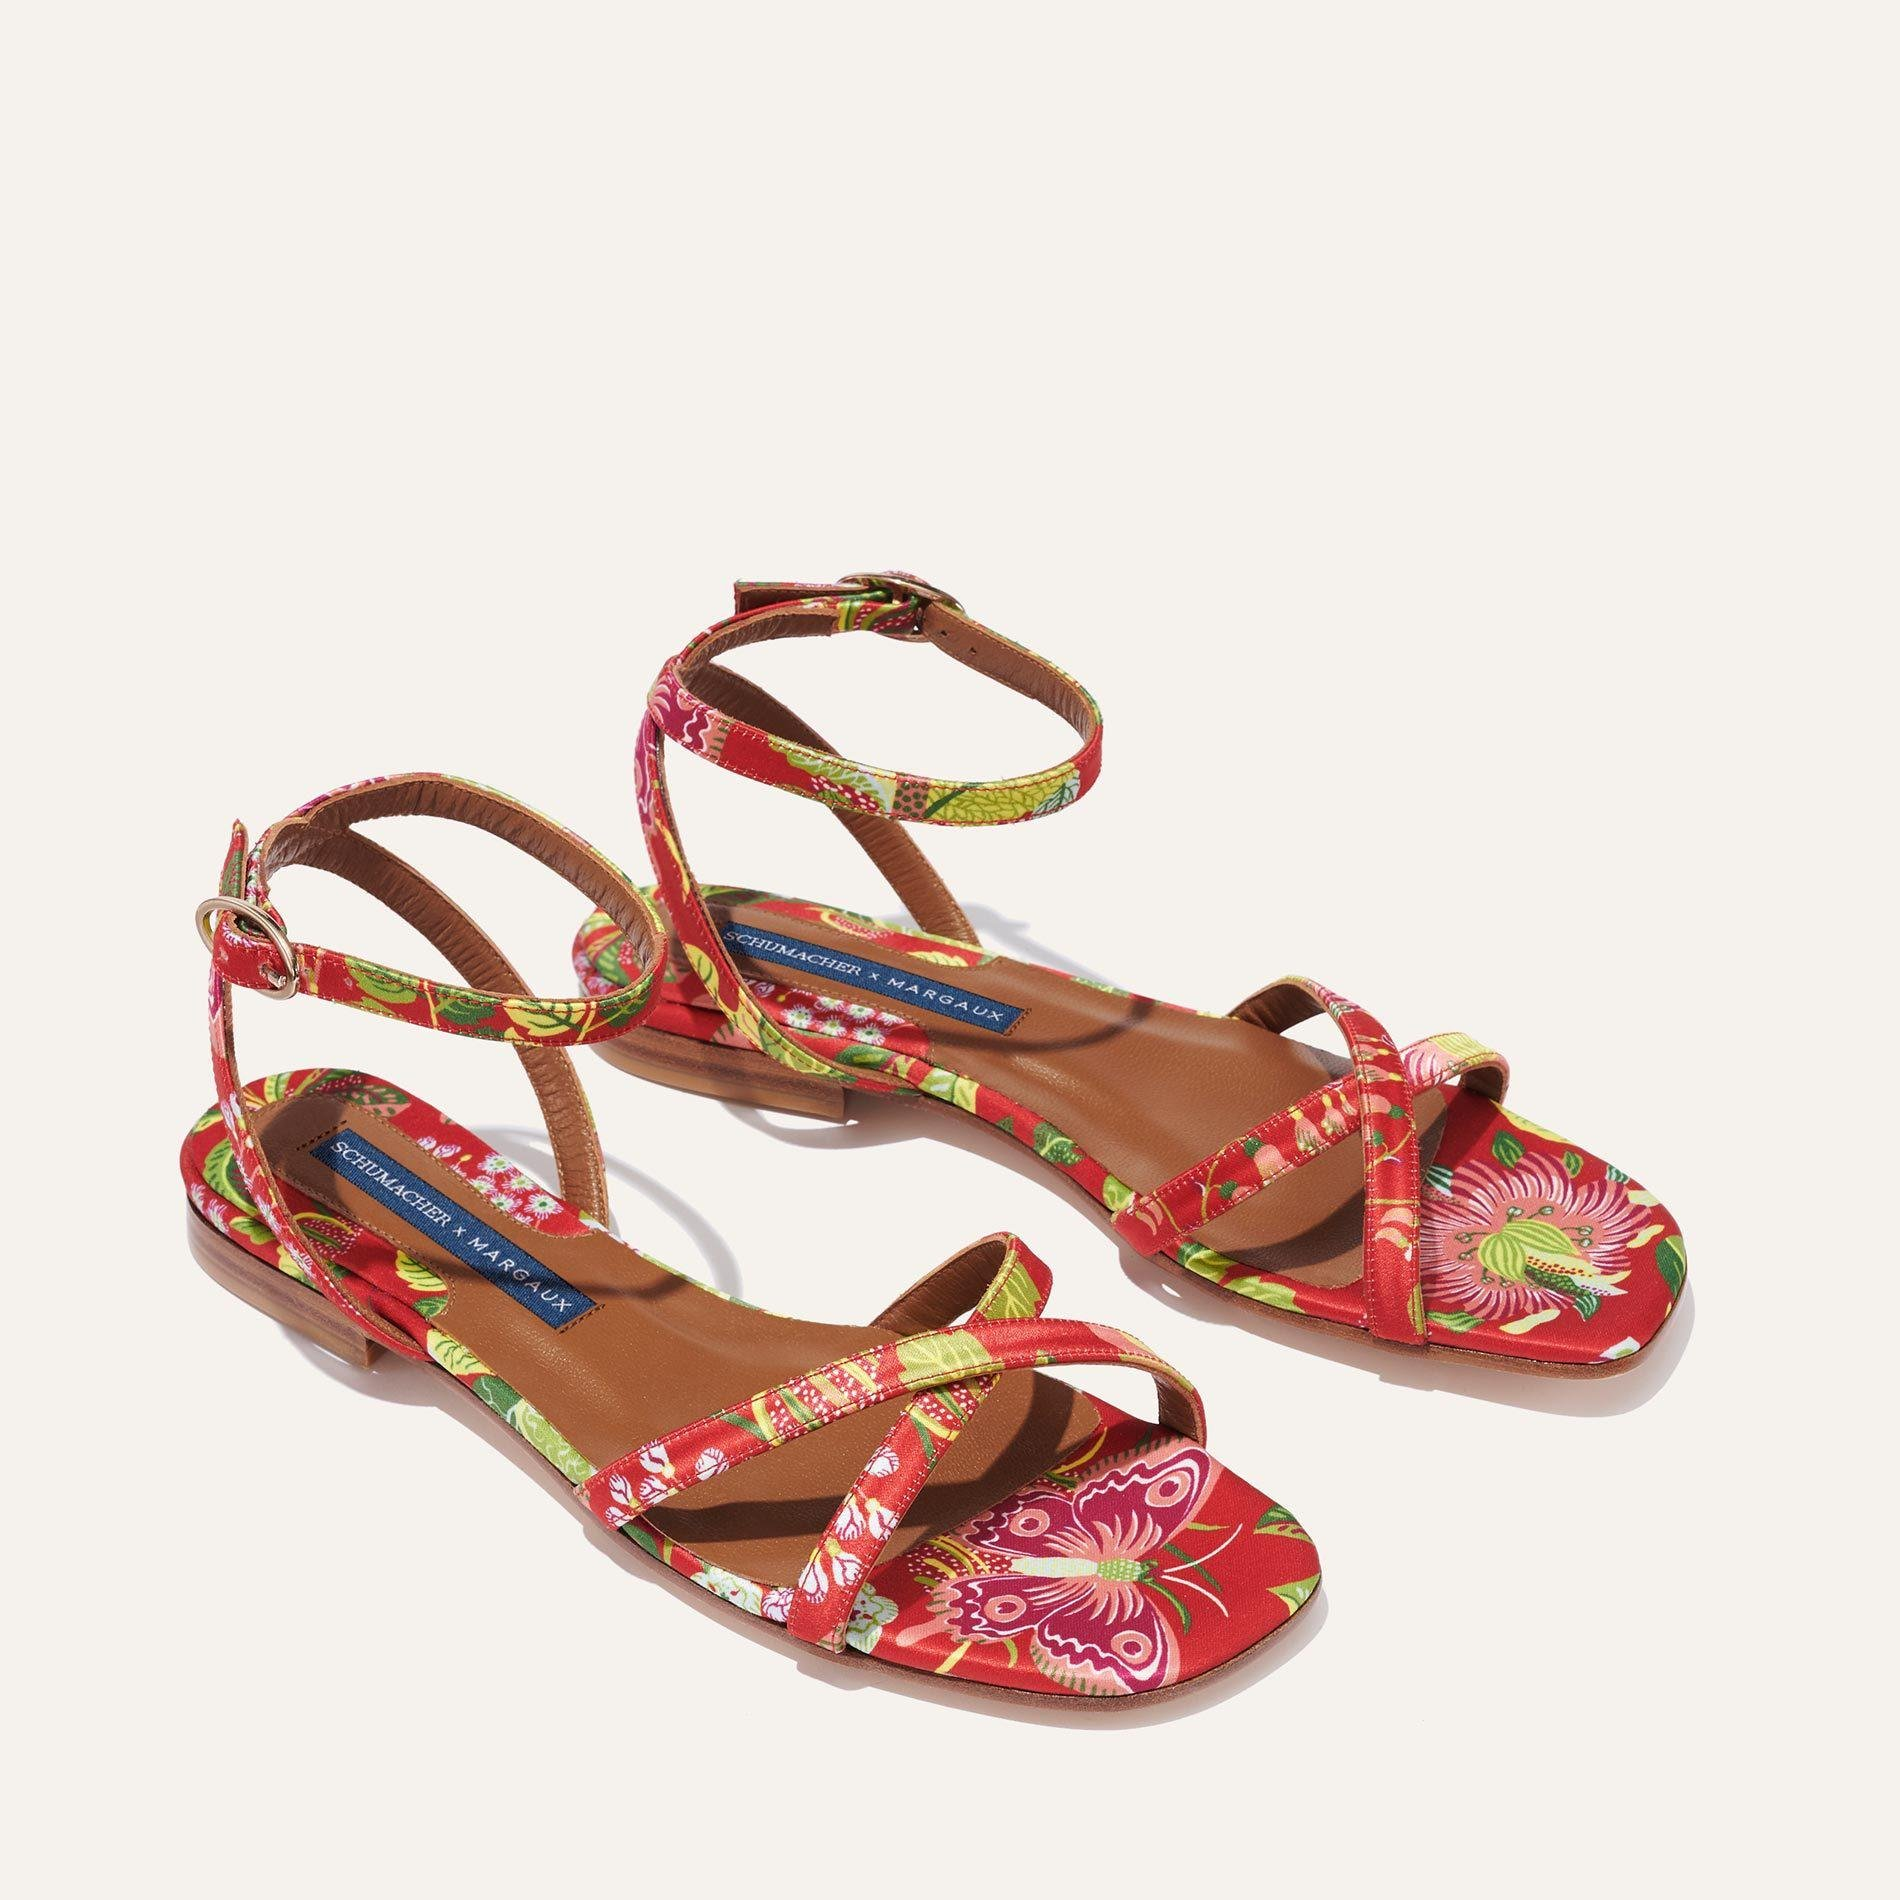 Schumacher x Margaux - The Flat Sandal in Exotic Butterfly 1